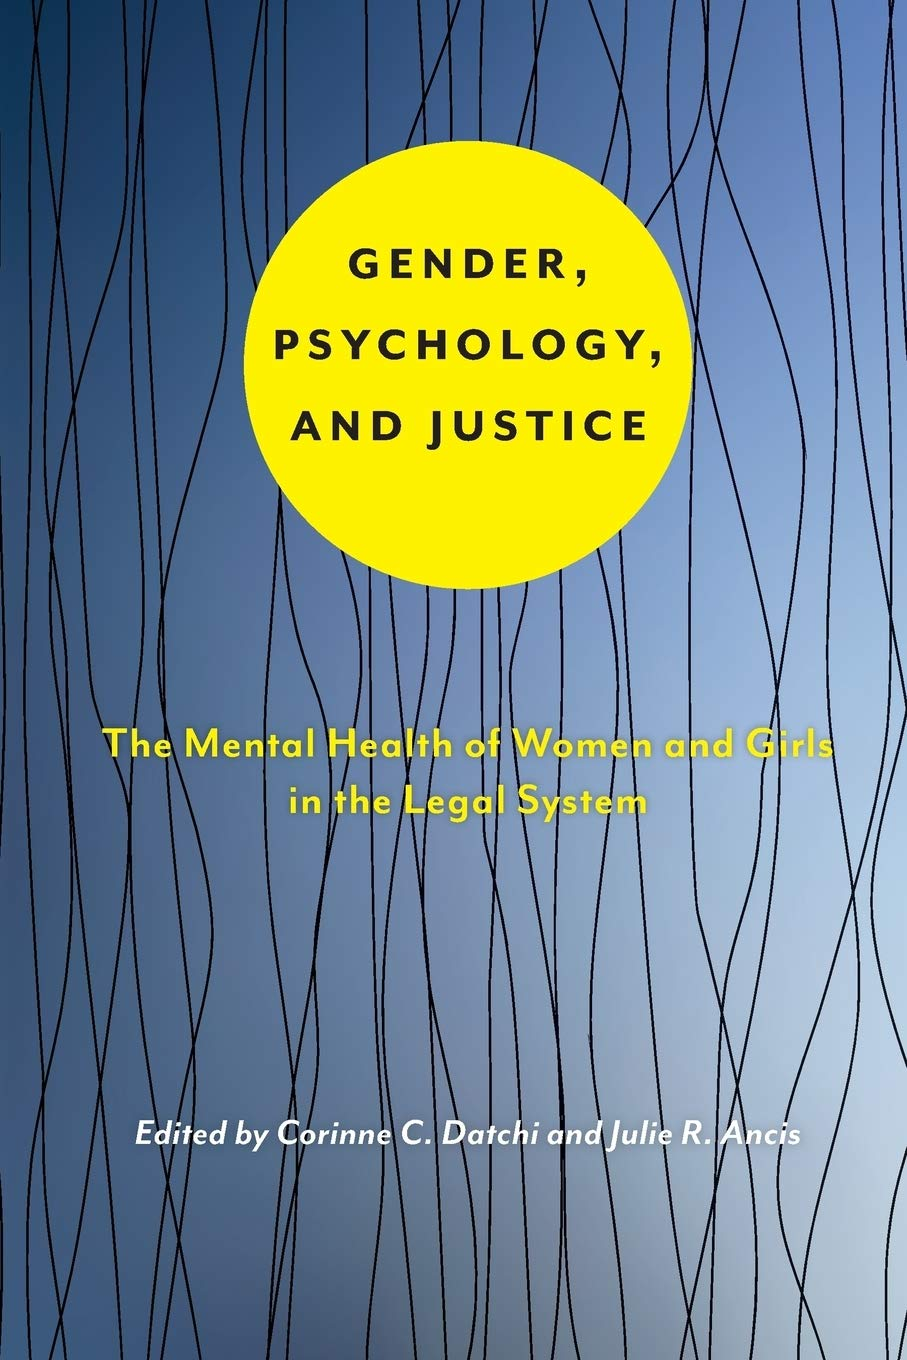 Cover image for Gender, Psychology, and Justice; Yellow circle on blue background